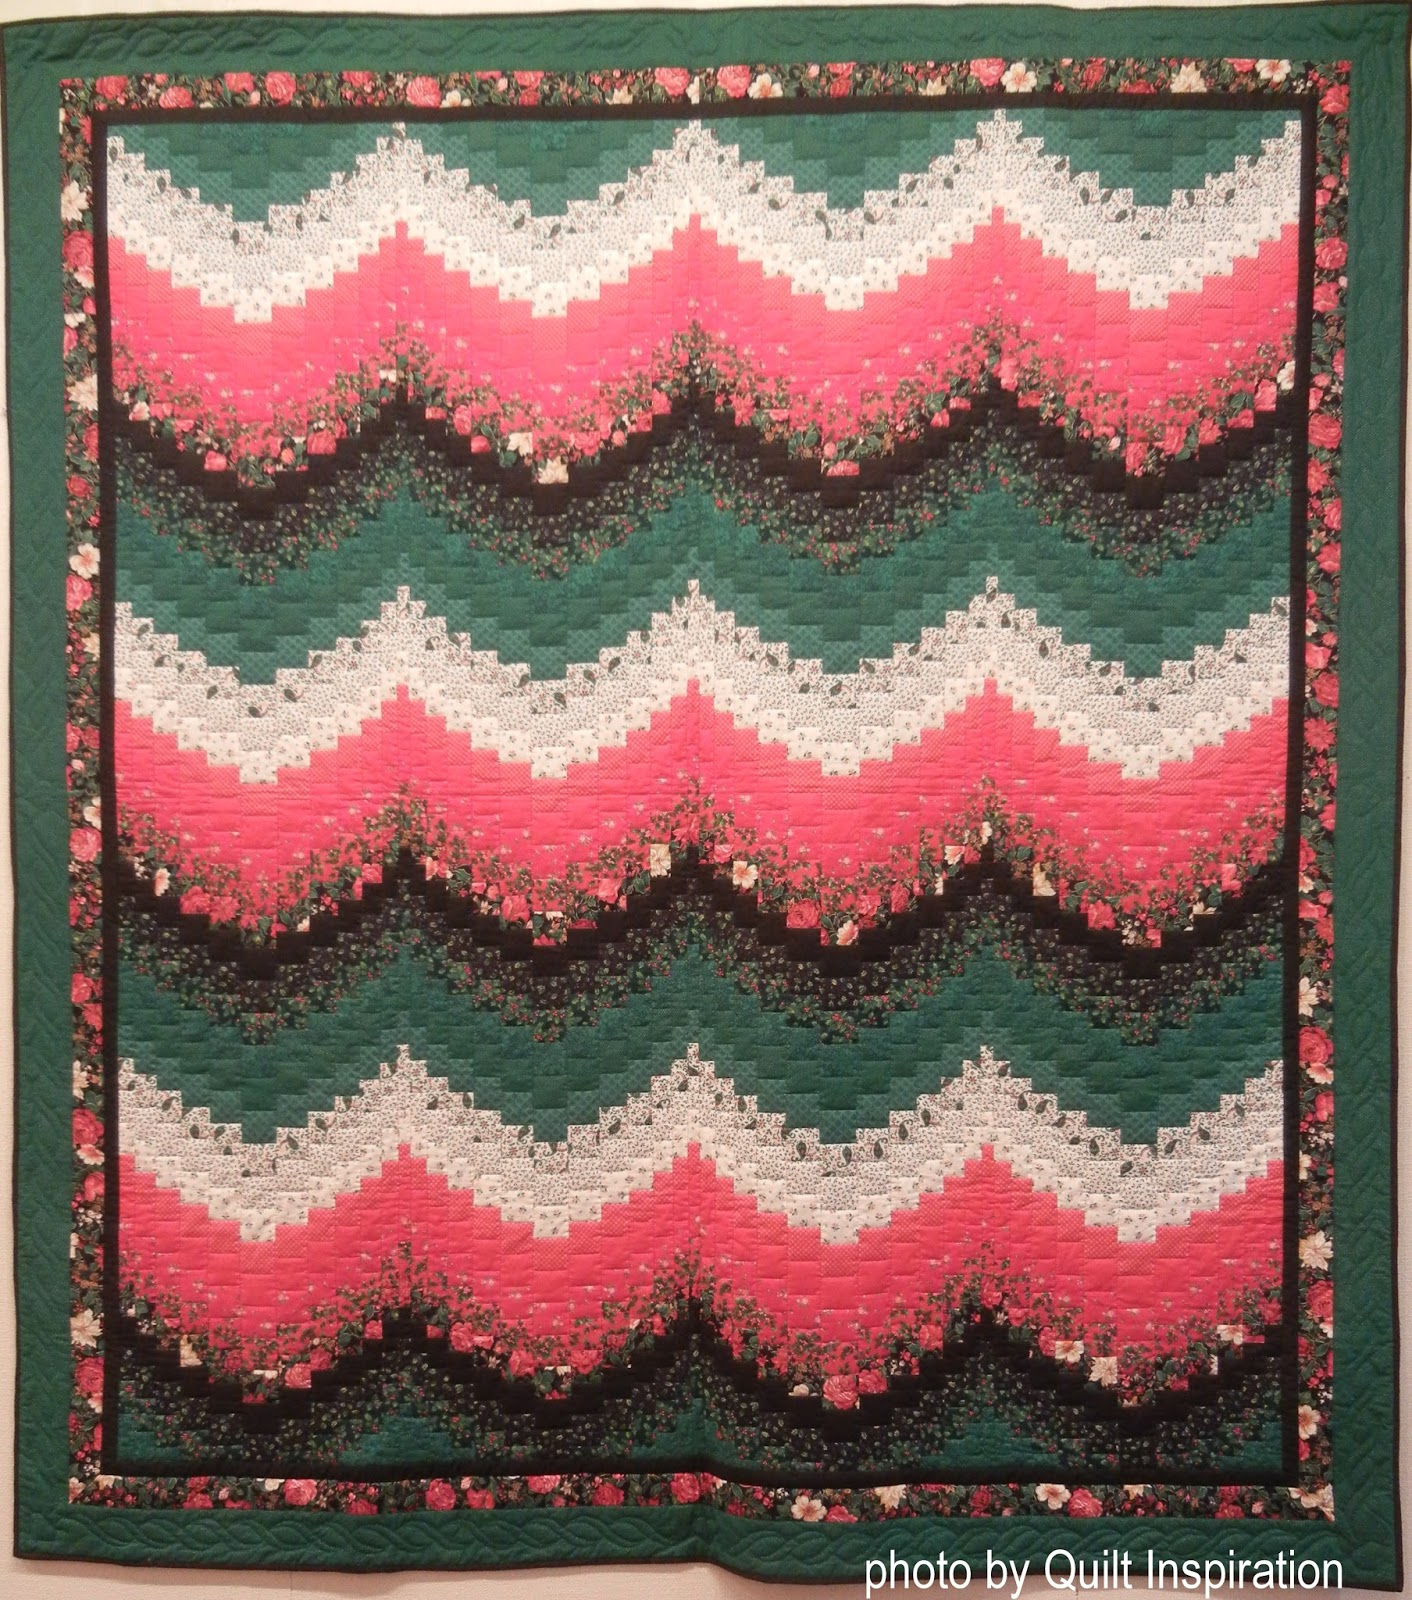 58878aed3a Geneal's elegant bargello quilt is done in restful shades of muted green,  red, ivory, and deep black solid fabrics. The rose print fabric of the  border and ...